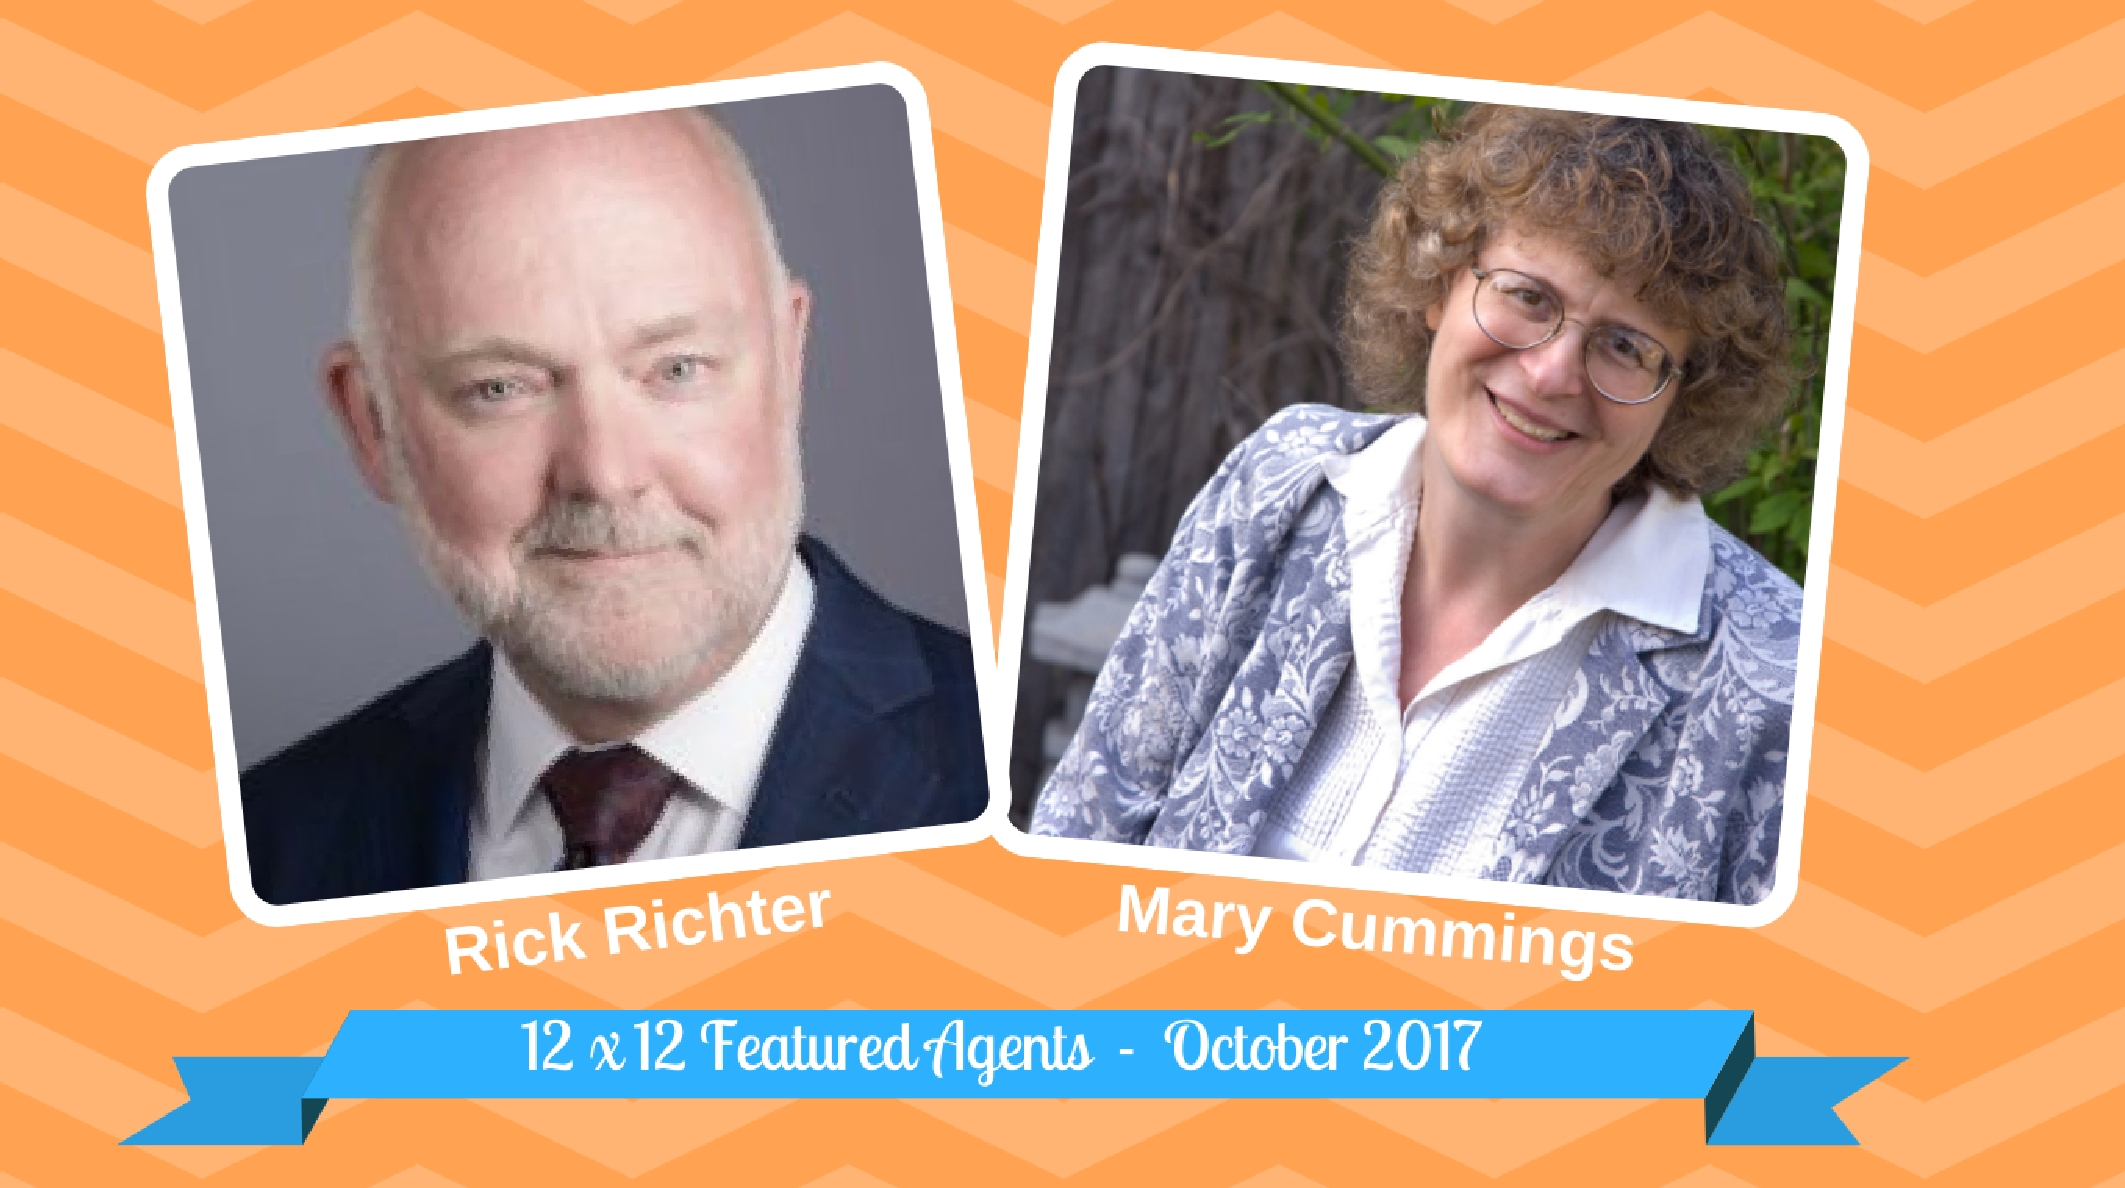 Rick Richter & Mary Cummings – 12 X 12 Featured Agents October 2017